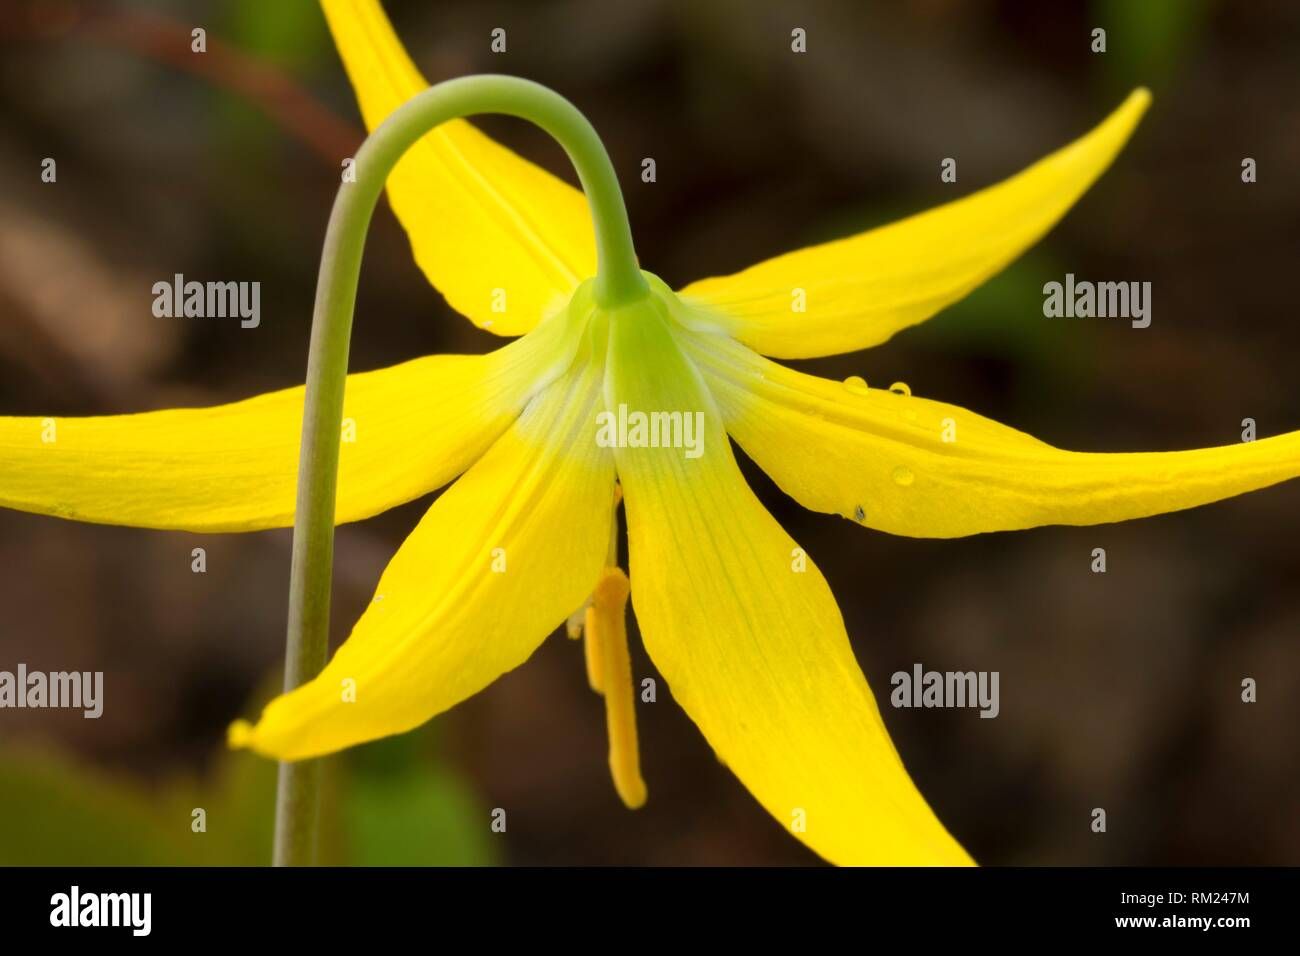 Glacier lily, Absaroka Beartooth Wilderness, Gallatin National Forest, Montana. - Stock Image